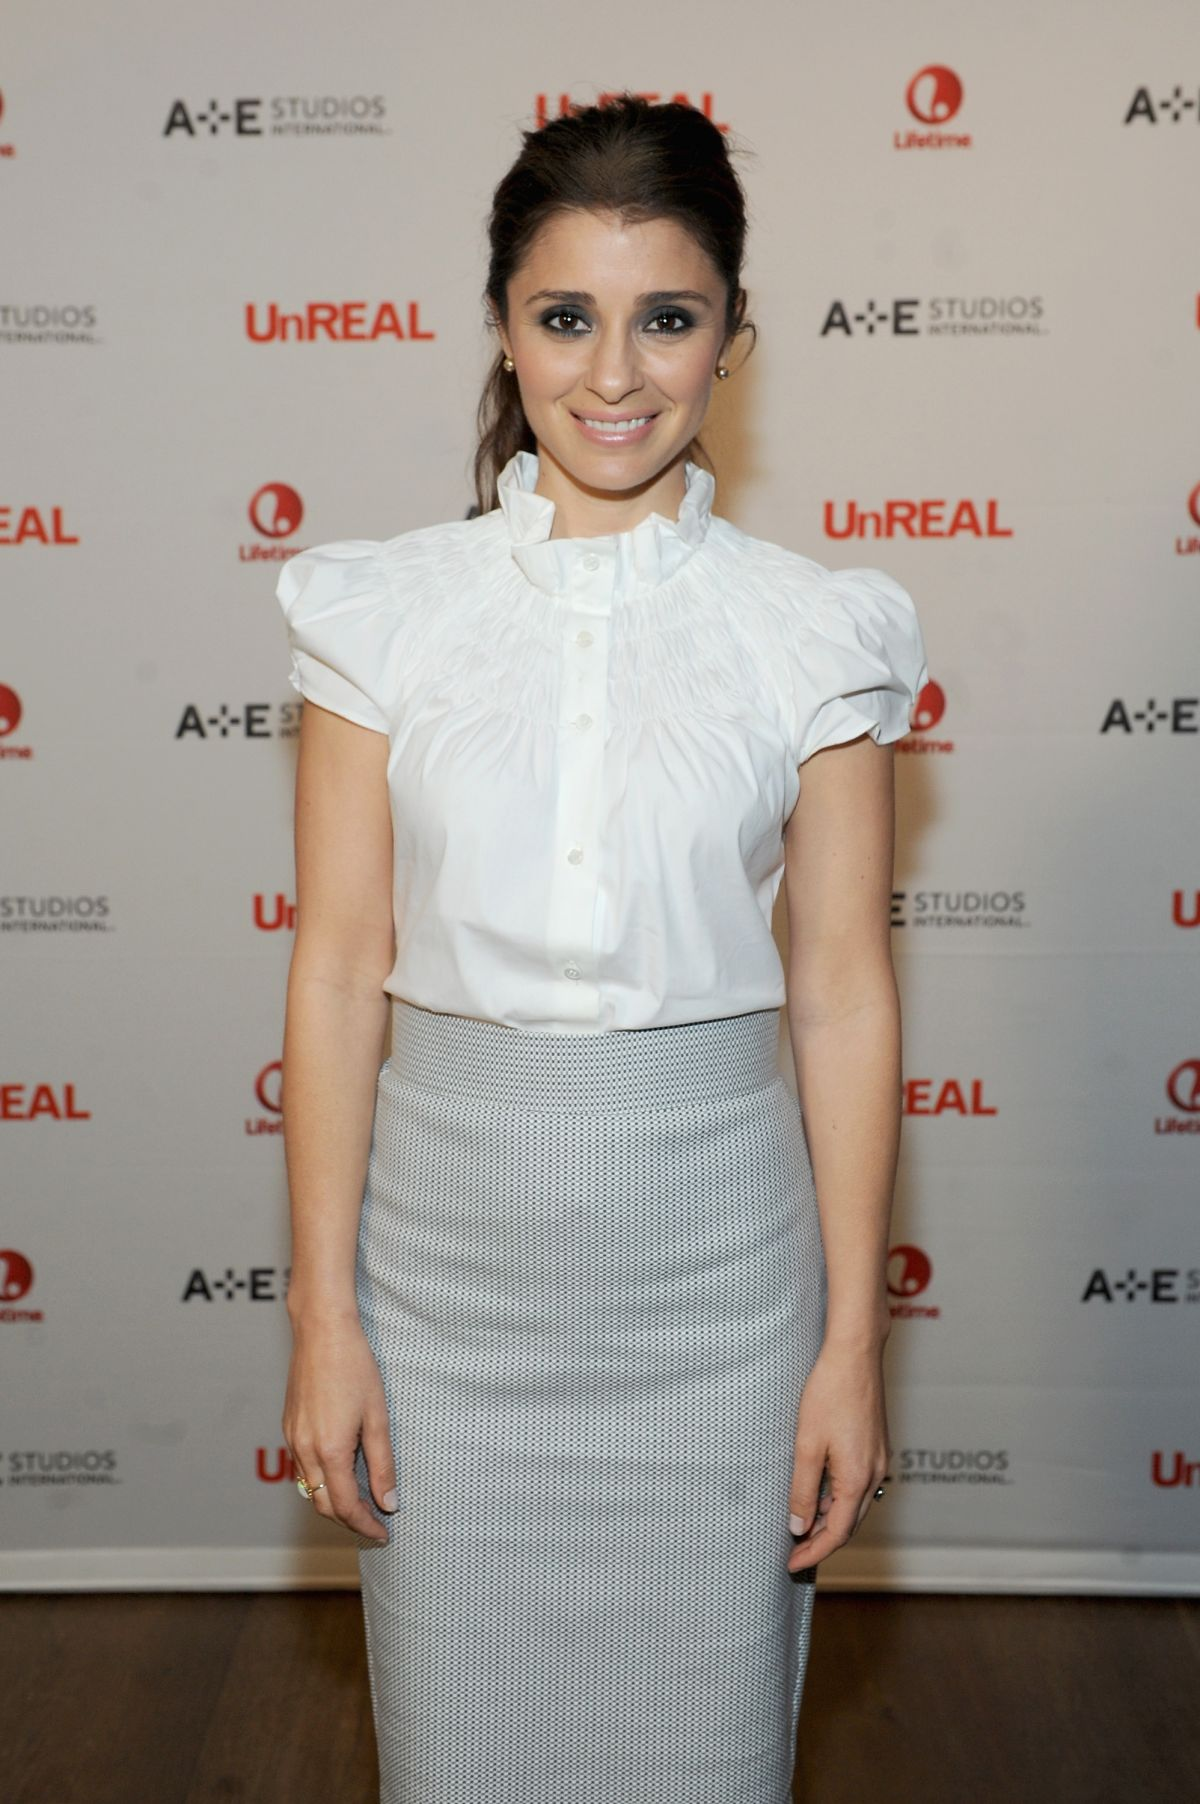 SHIRI APPLEBY at Unreal International Press Event in New York